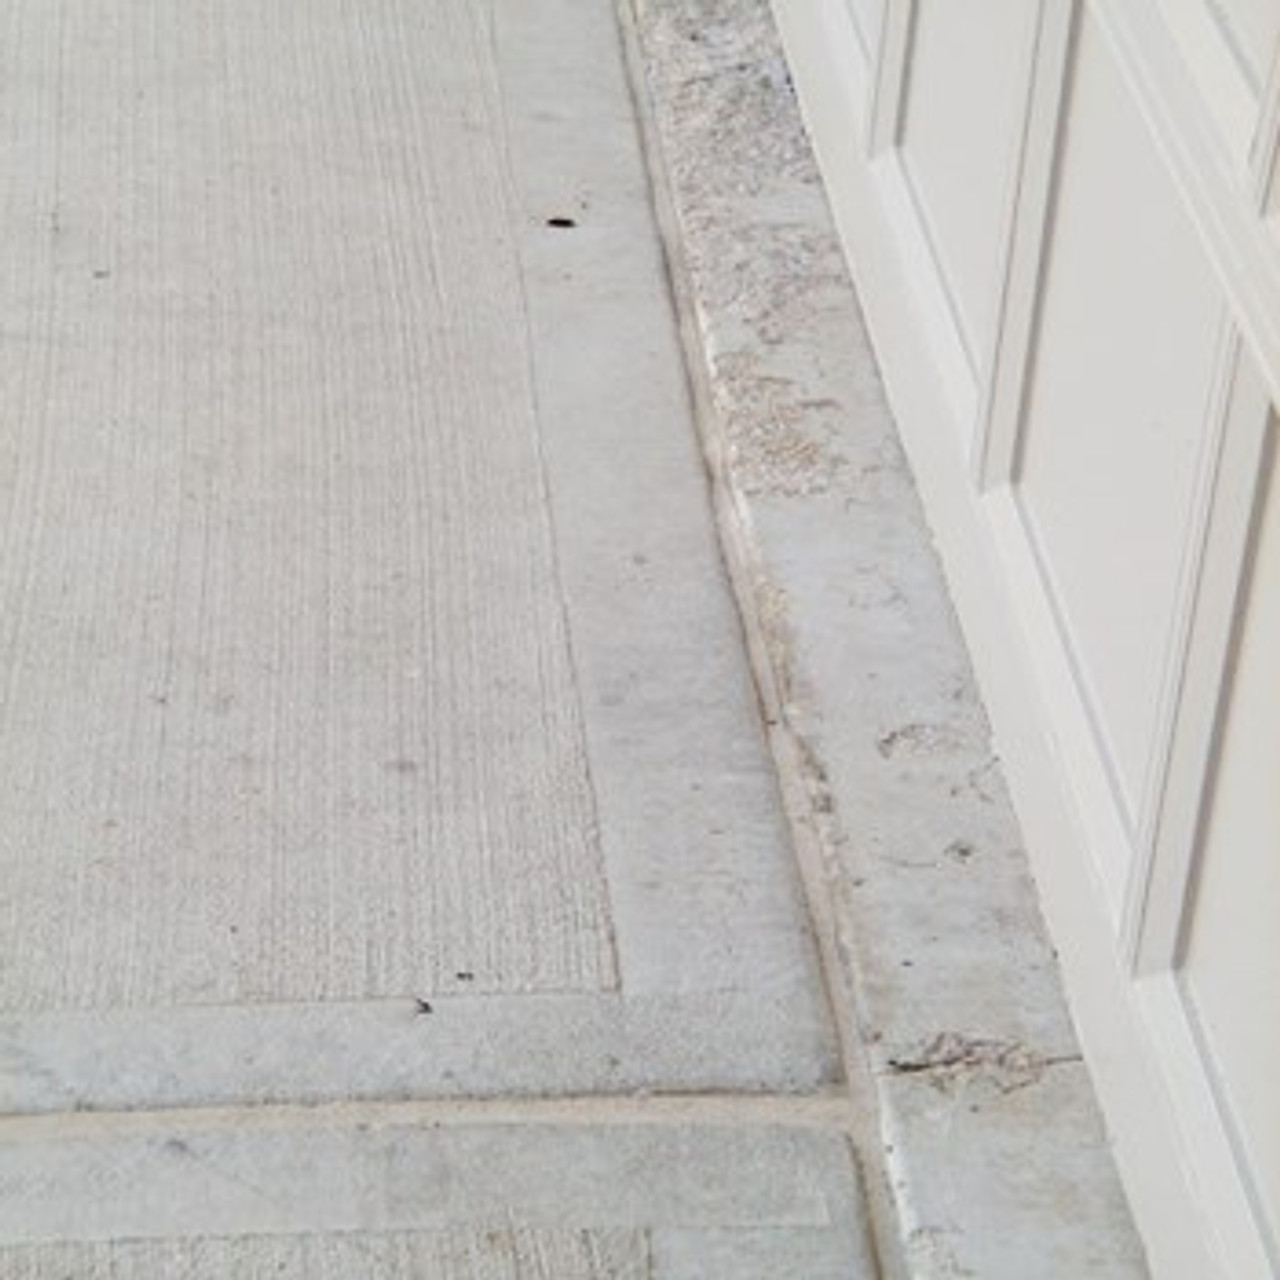 Clean and seal expansion joint with flexible caulk to allow movement